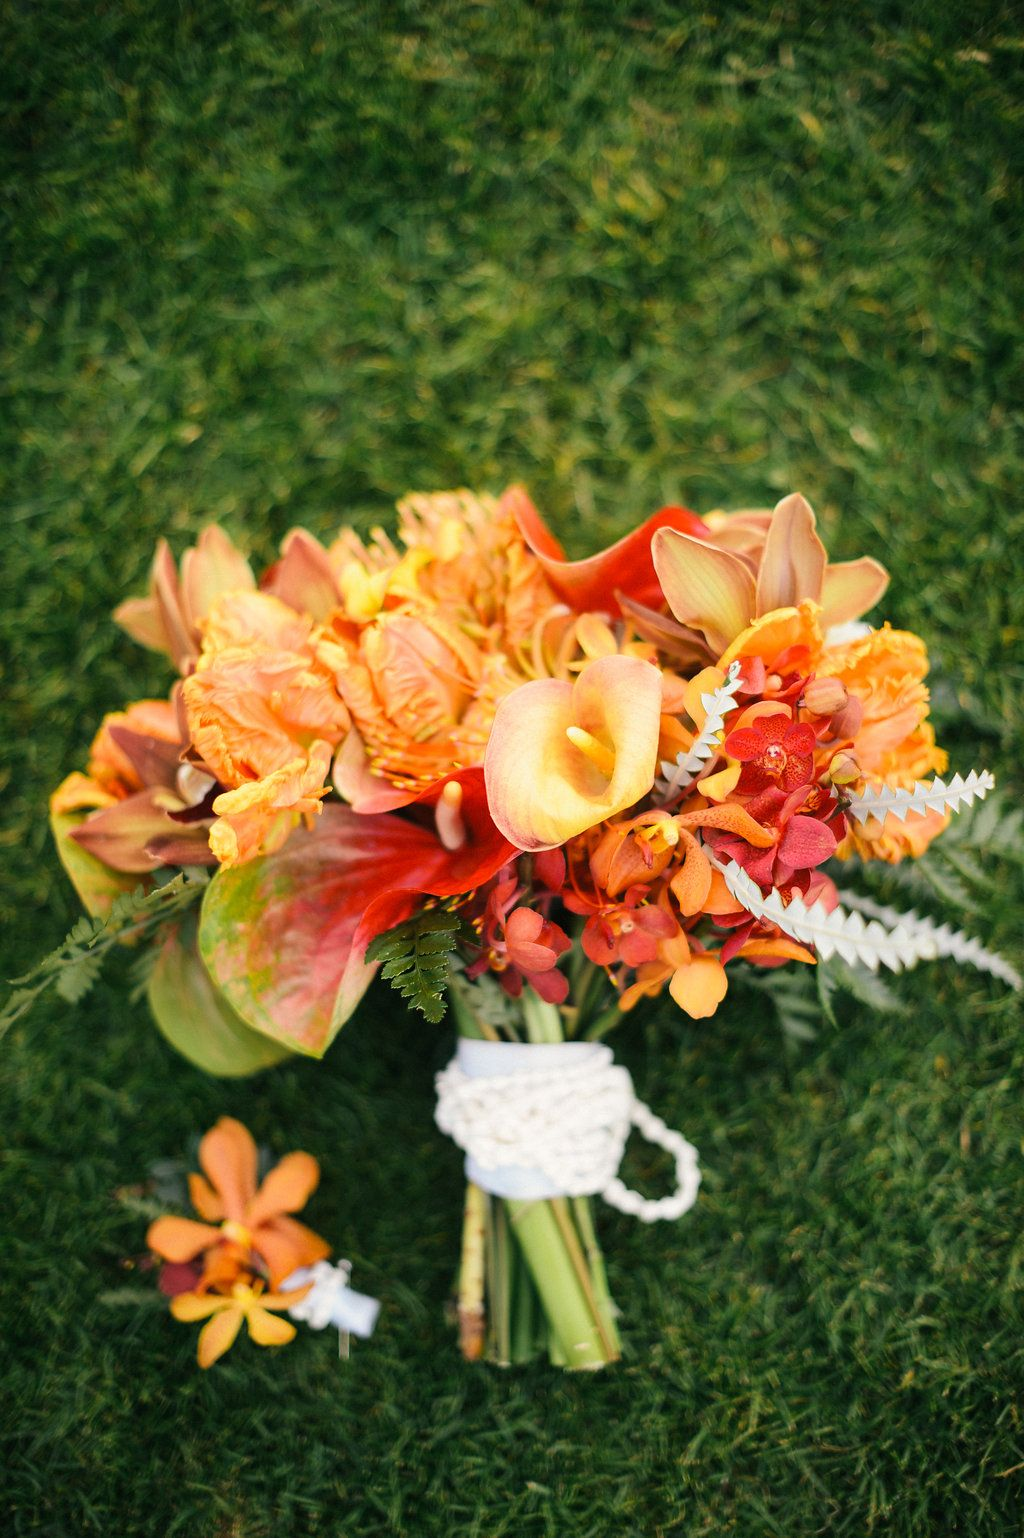 Orange and red wedding bouquet beach wedding floral arrangements orange and red wedding bouquet beach wedding floral arrangements tropical wedding tropical flowers hawaii wedding bright wedding bouquet izmirmasajfo